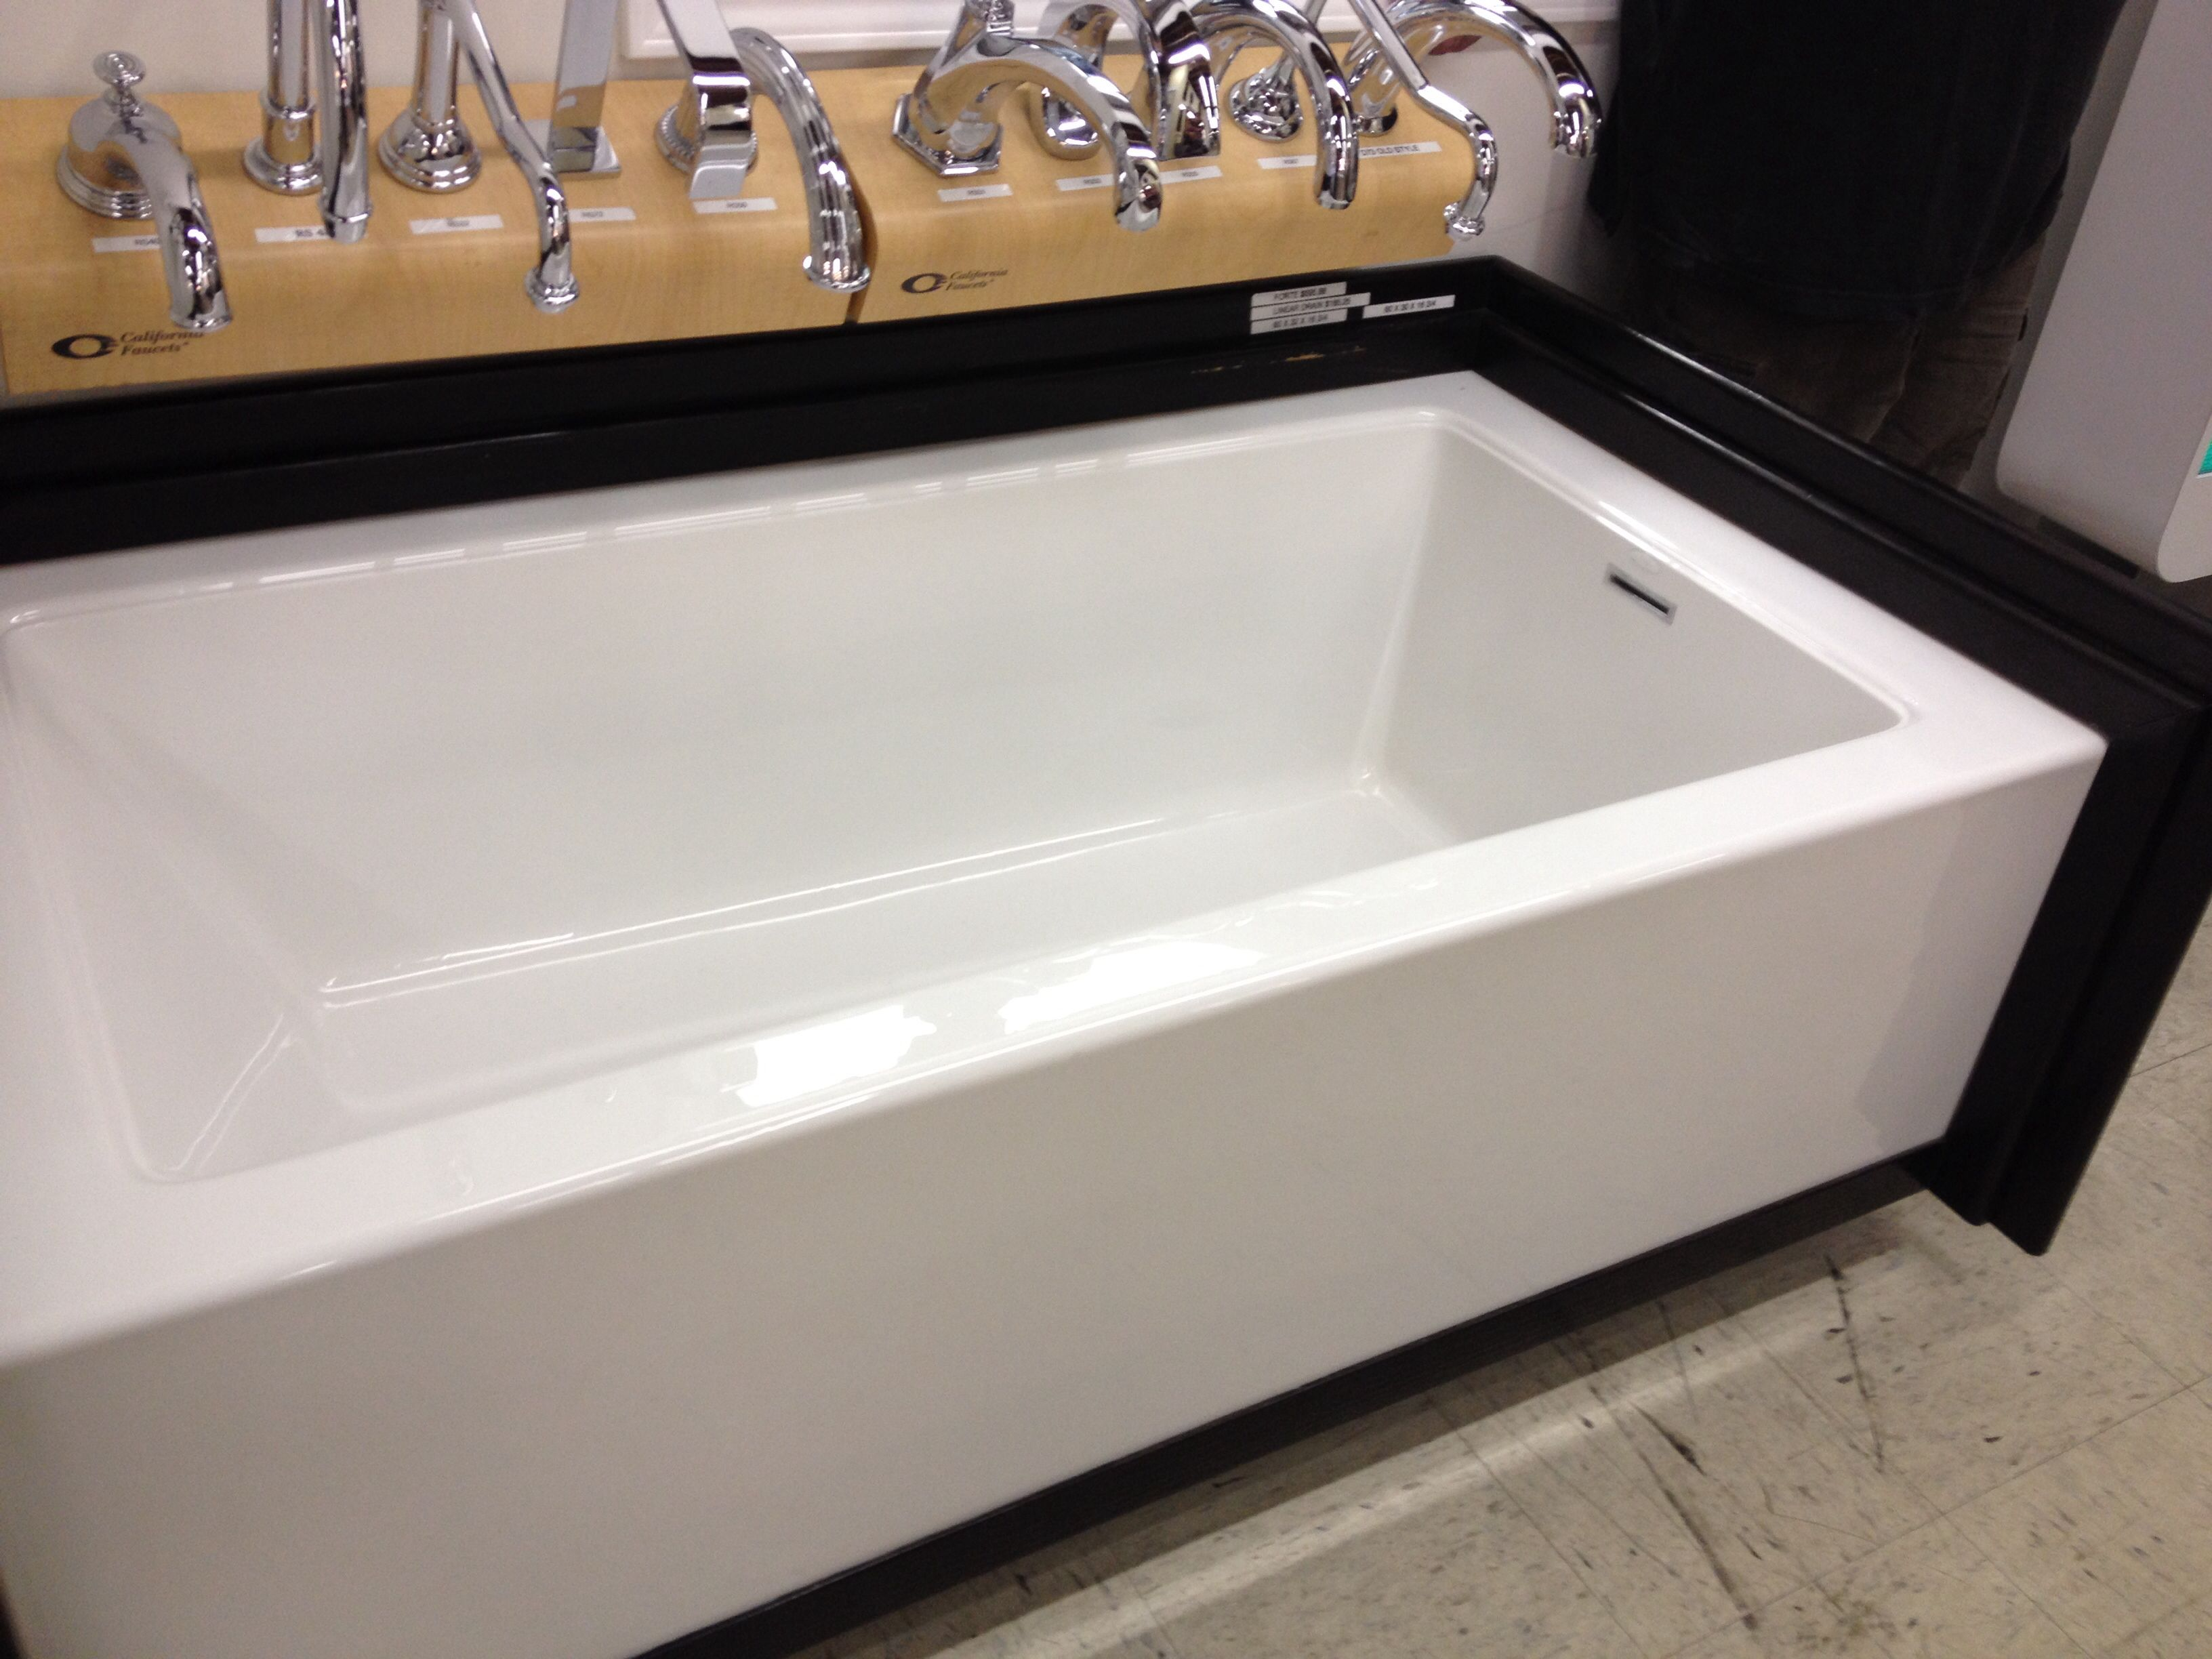 60x30x16 75 Forte Tub With Linear Drain From Reback S In Gardena